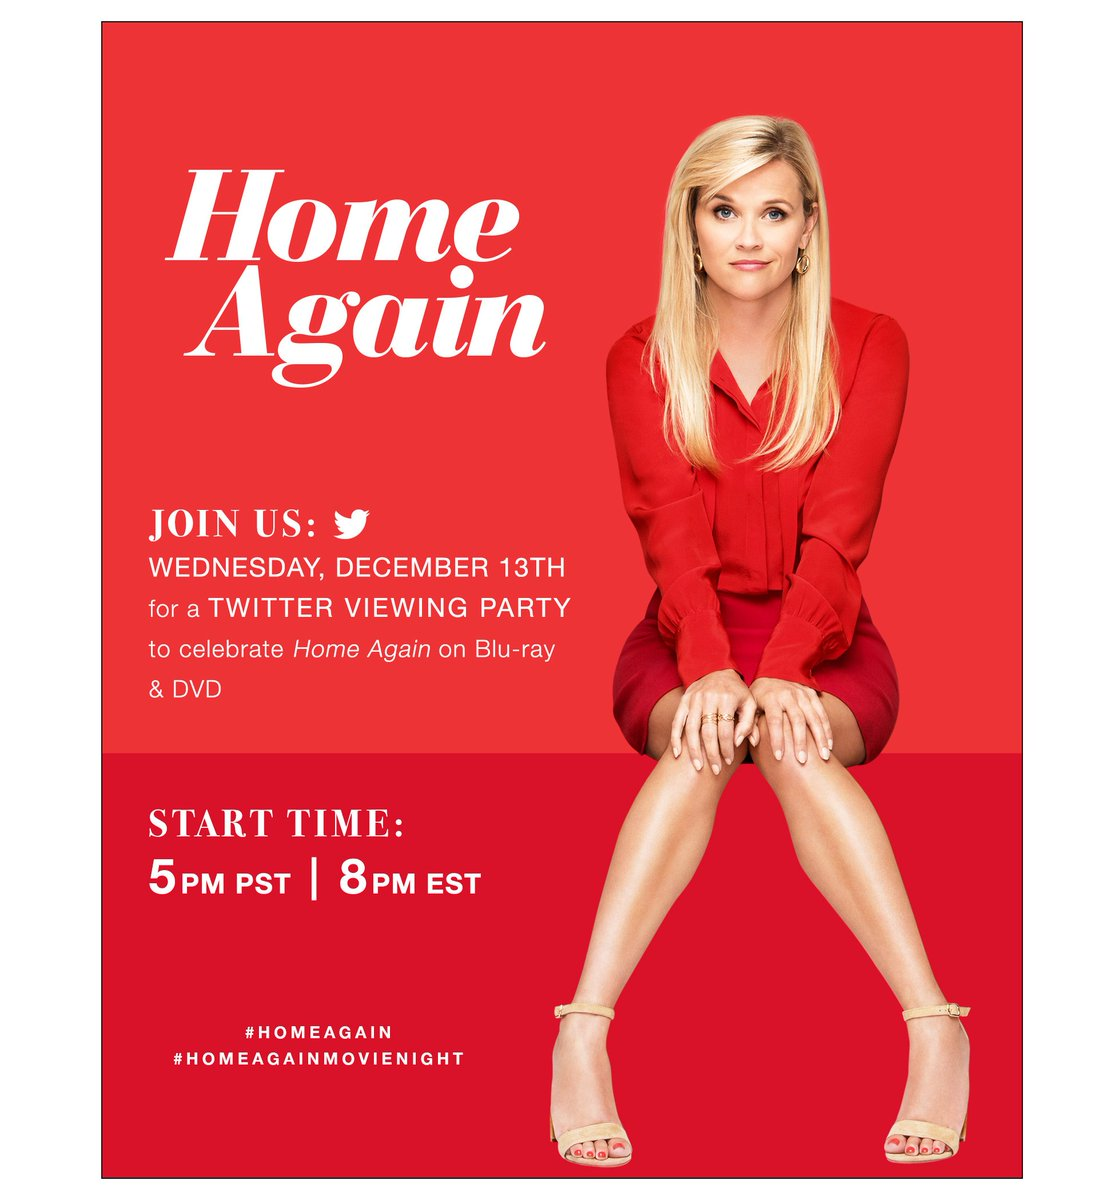 Save the date! Join the #HOMEAGAIN Twitter viewing party 12/13 at 8pm EST! Hope to tweet you then! 👋#ad #HOMEAGAINMOVIENIGHTMOVIENIGHT